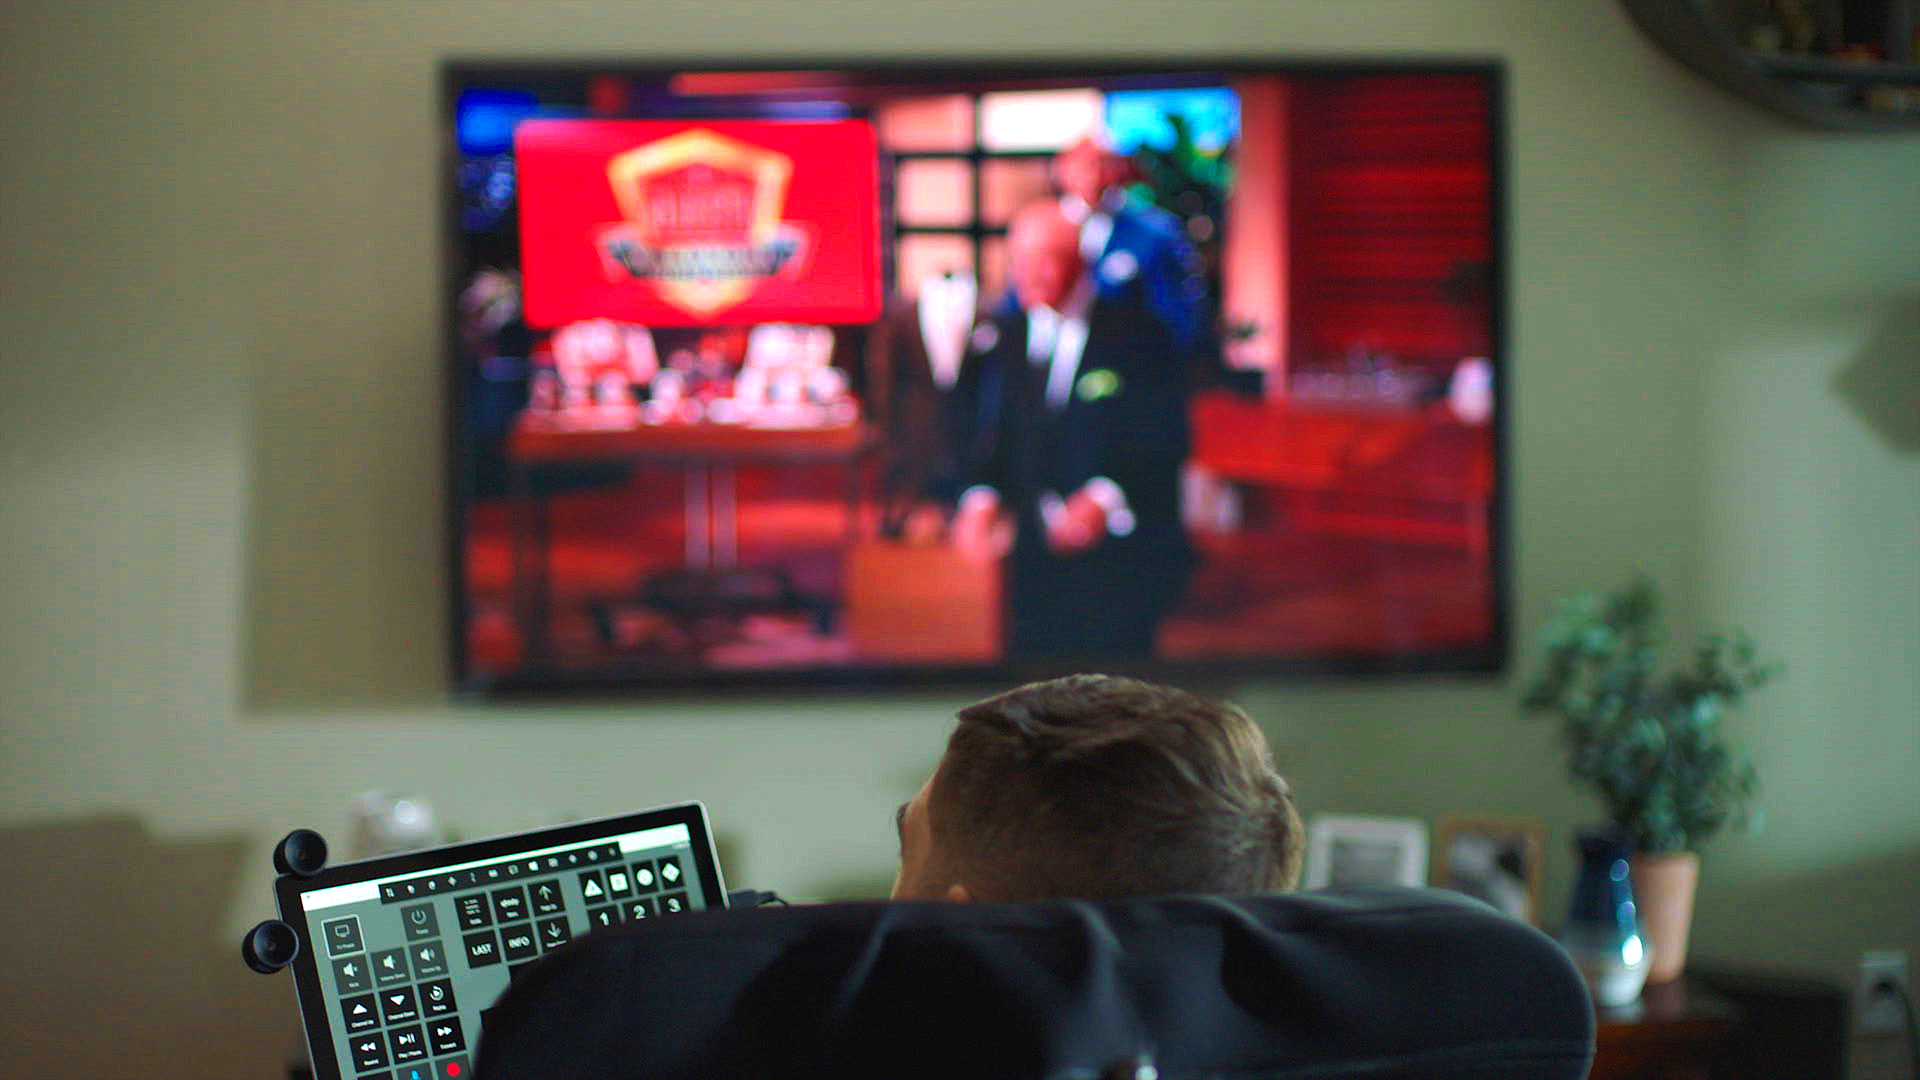 Comcast Launches Eye-Control for the Television | Business Wire